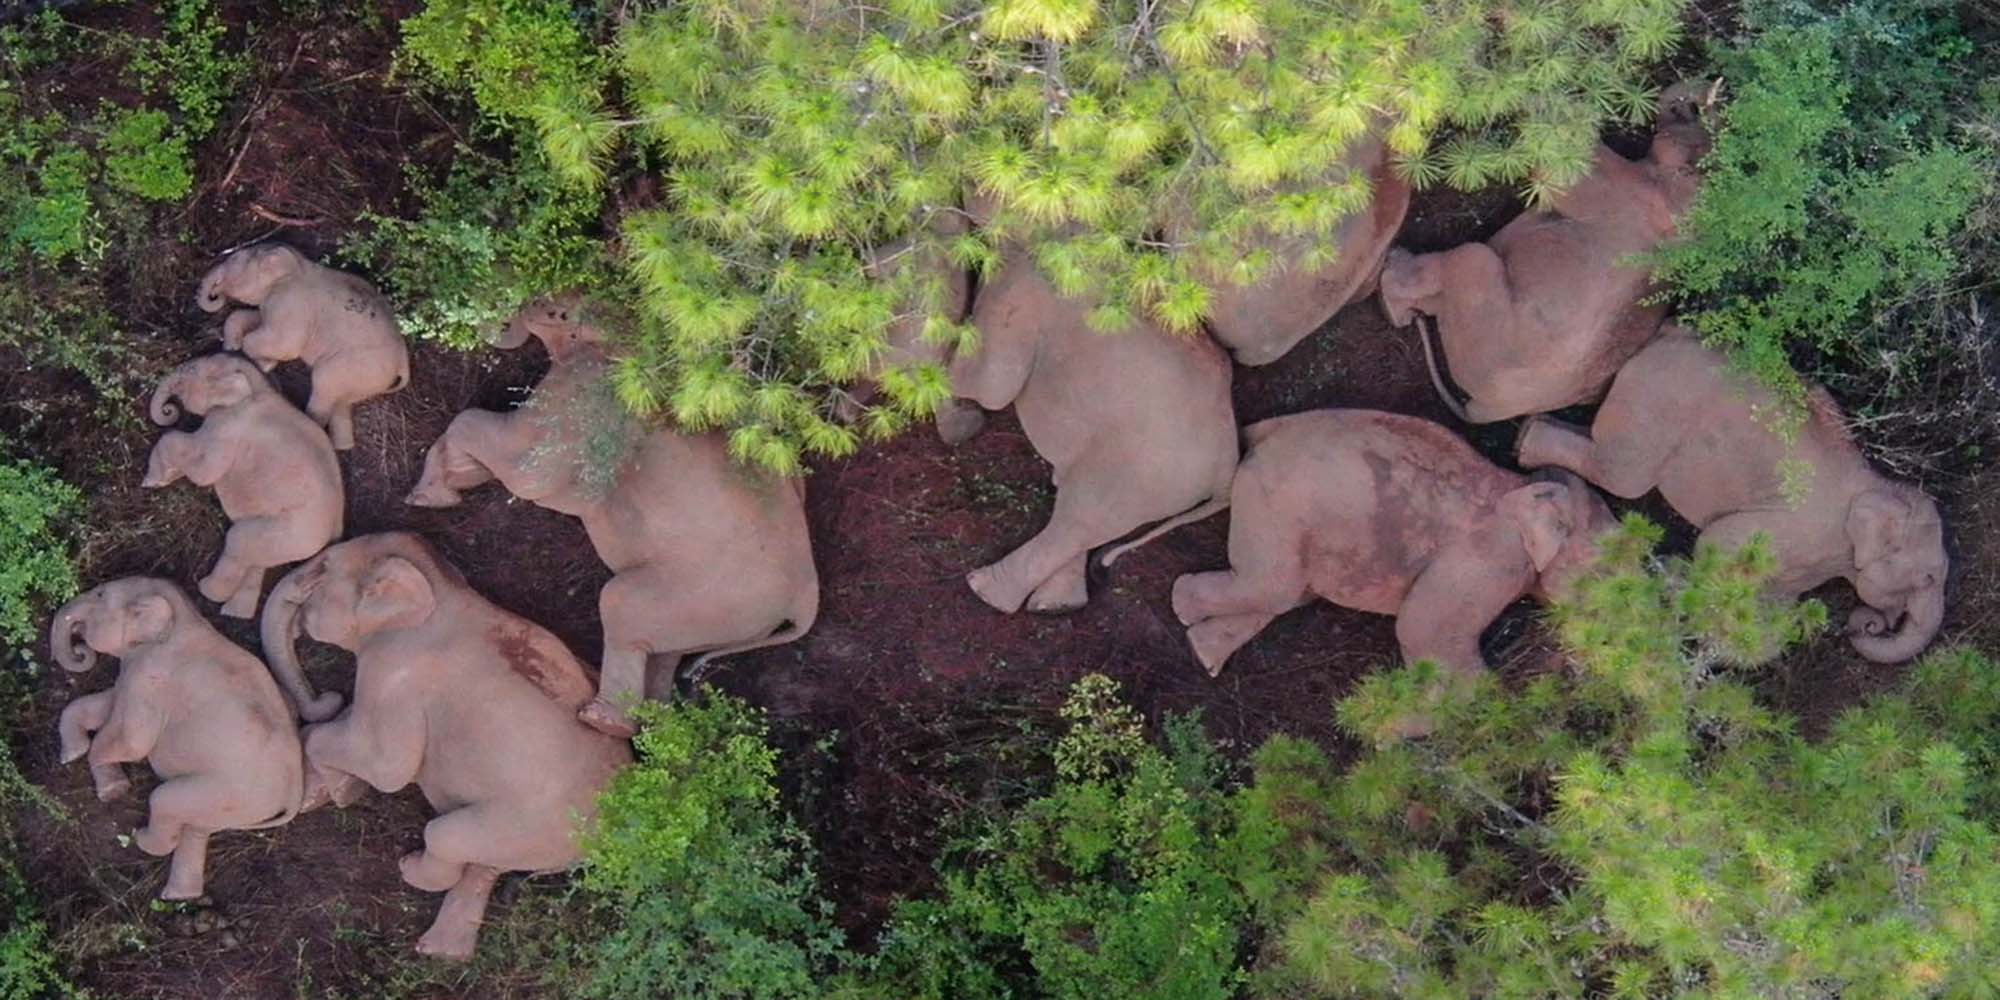 Conservationists Try Guiding China's Wandering Elephants Home thumbnail